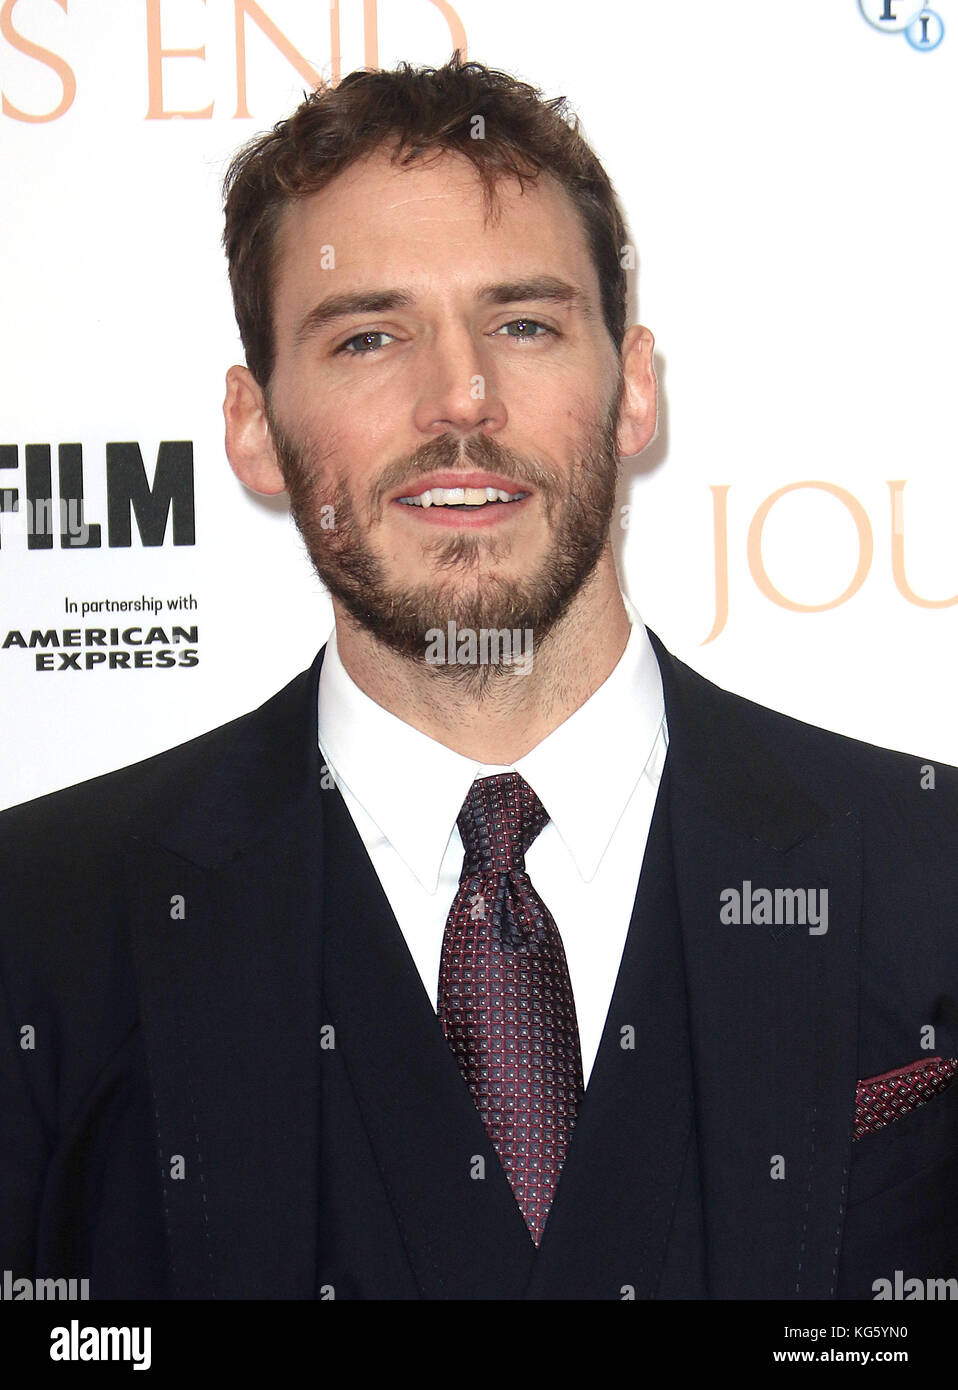 Oct 06, 2017 - Sam Claflin attending 'Journey's End' European Premiere, Odeon Leicester Square in London, - Stock Image